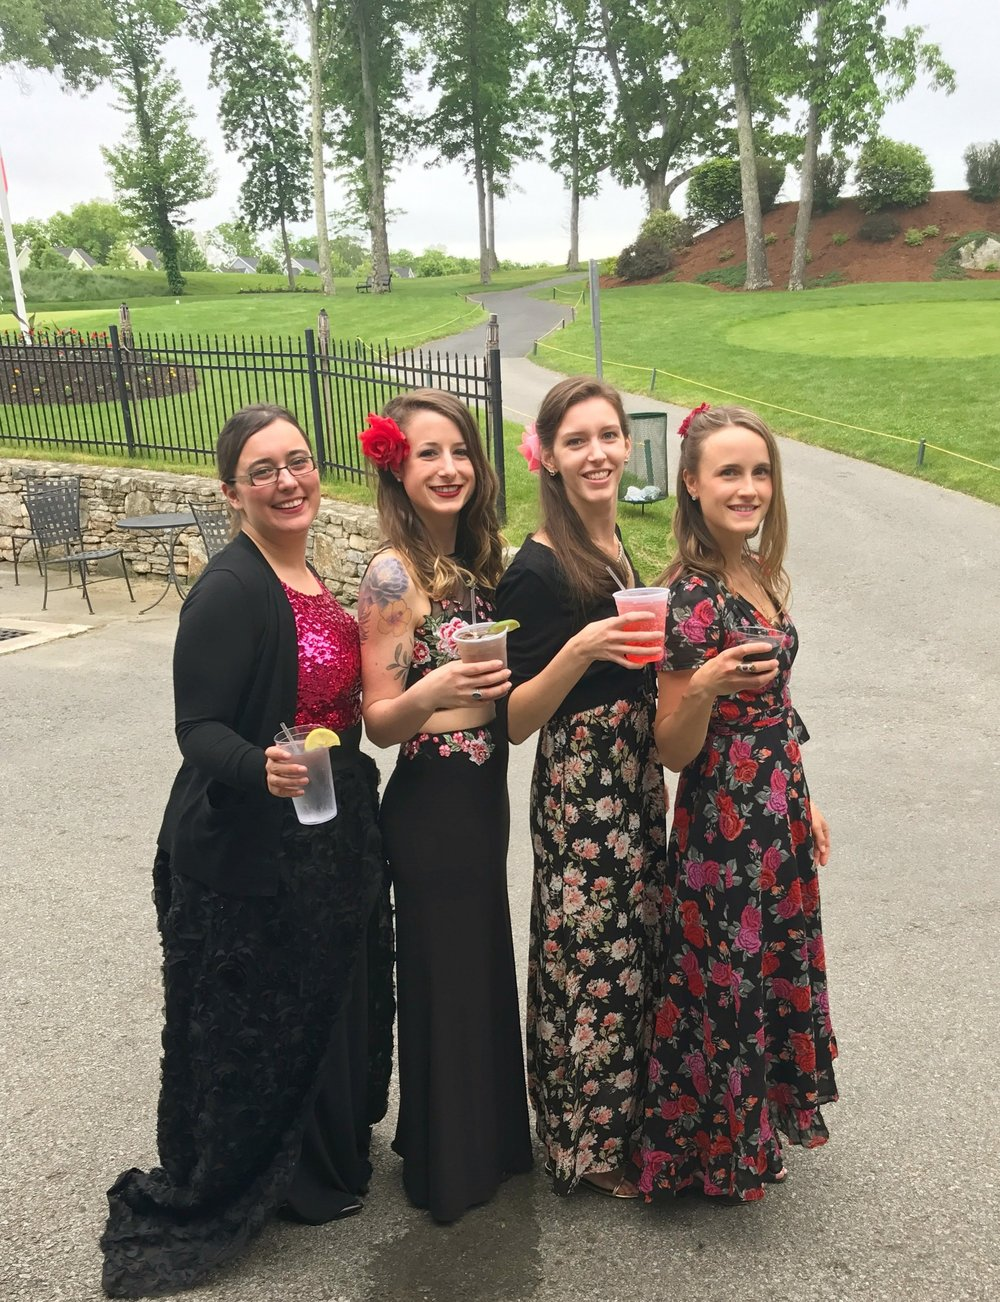 The ladies of the BVQ enjoy a celebratory drink after their debut concert on Sunday, June 4th! From left to right: Sylvia DiCrescentis (viola), Brittany Stockwell (2nd violin), Jamie Thiesing (cello), and Kathryn Haddad (1st violin).